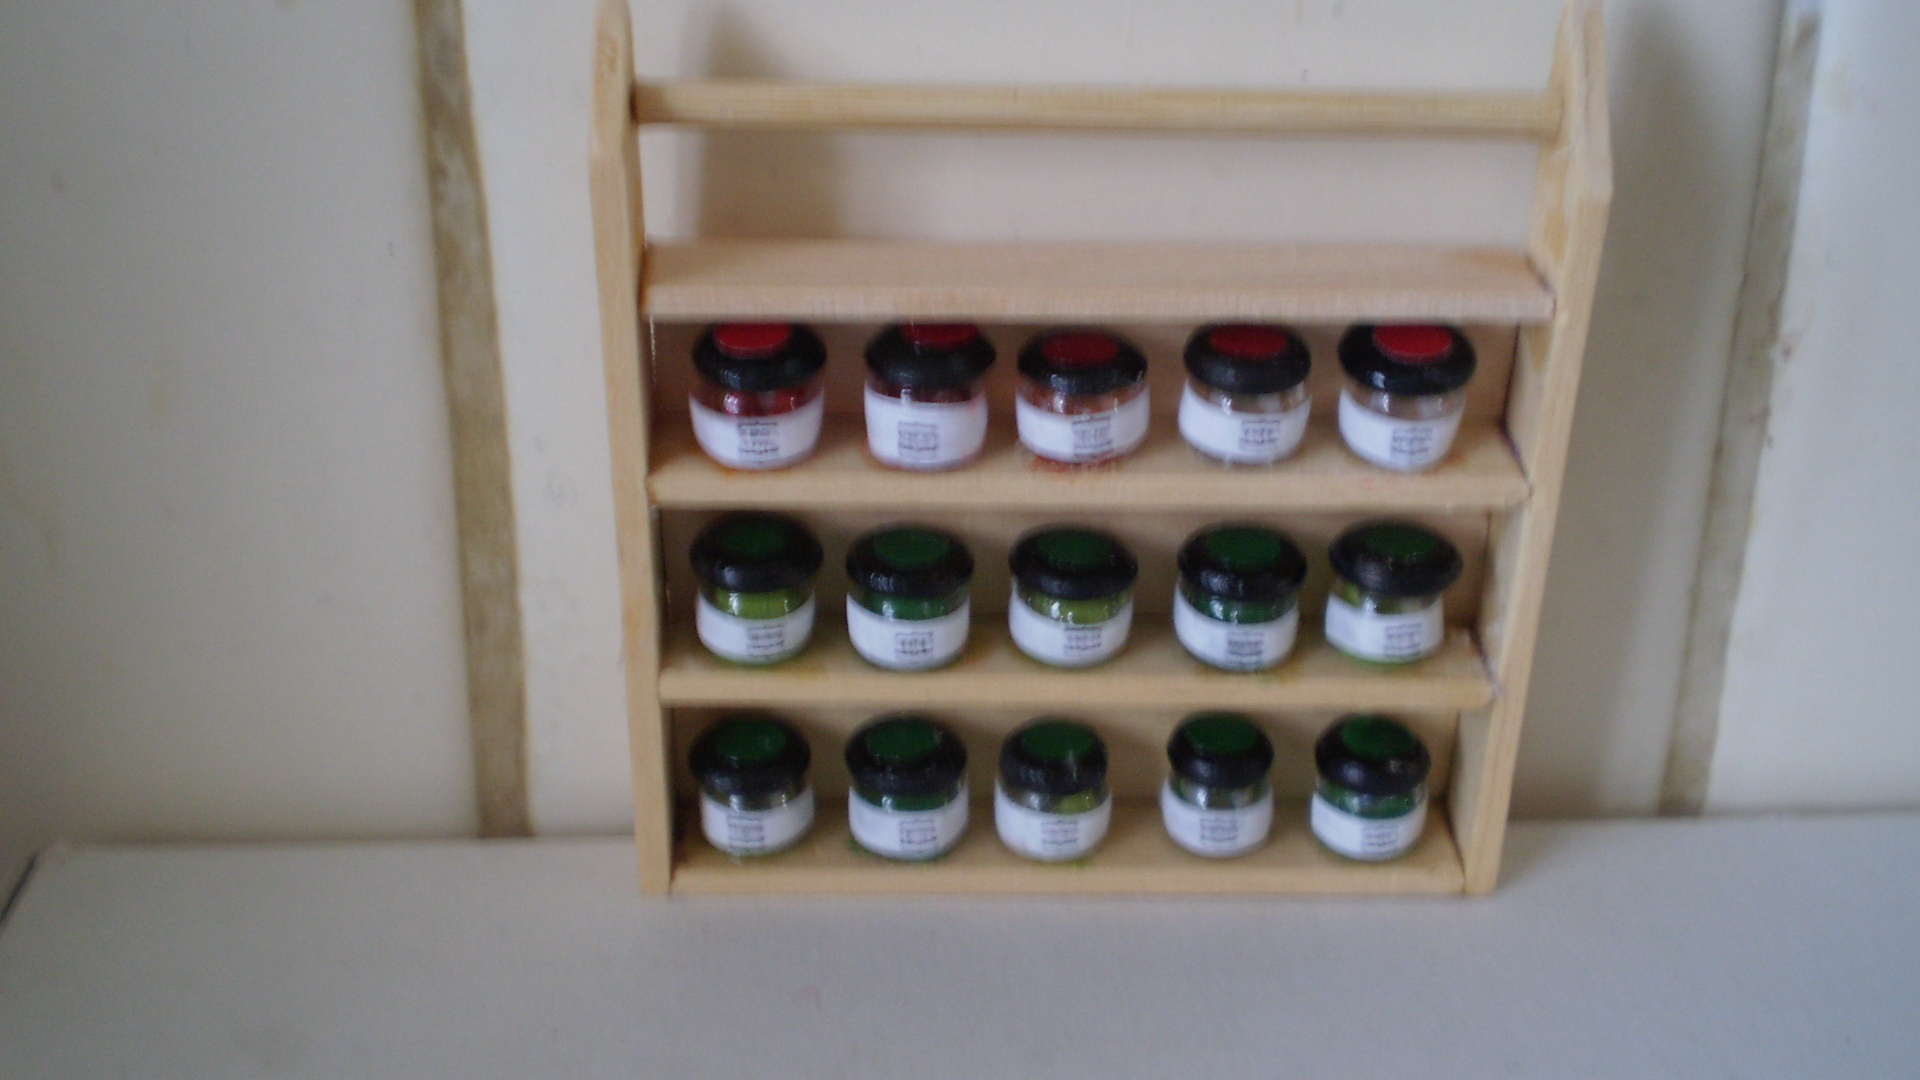 1/12th scale spice rack